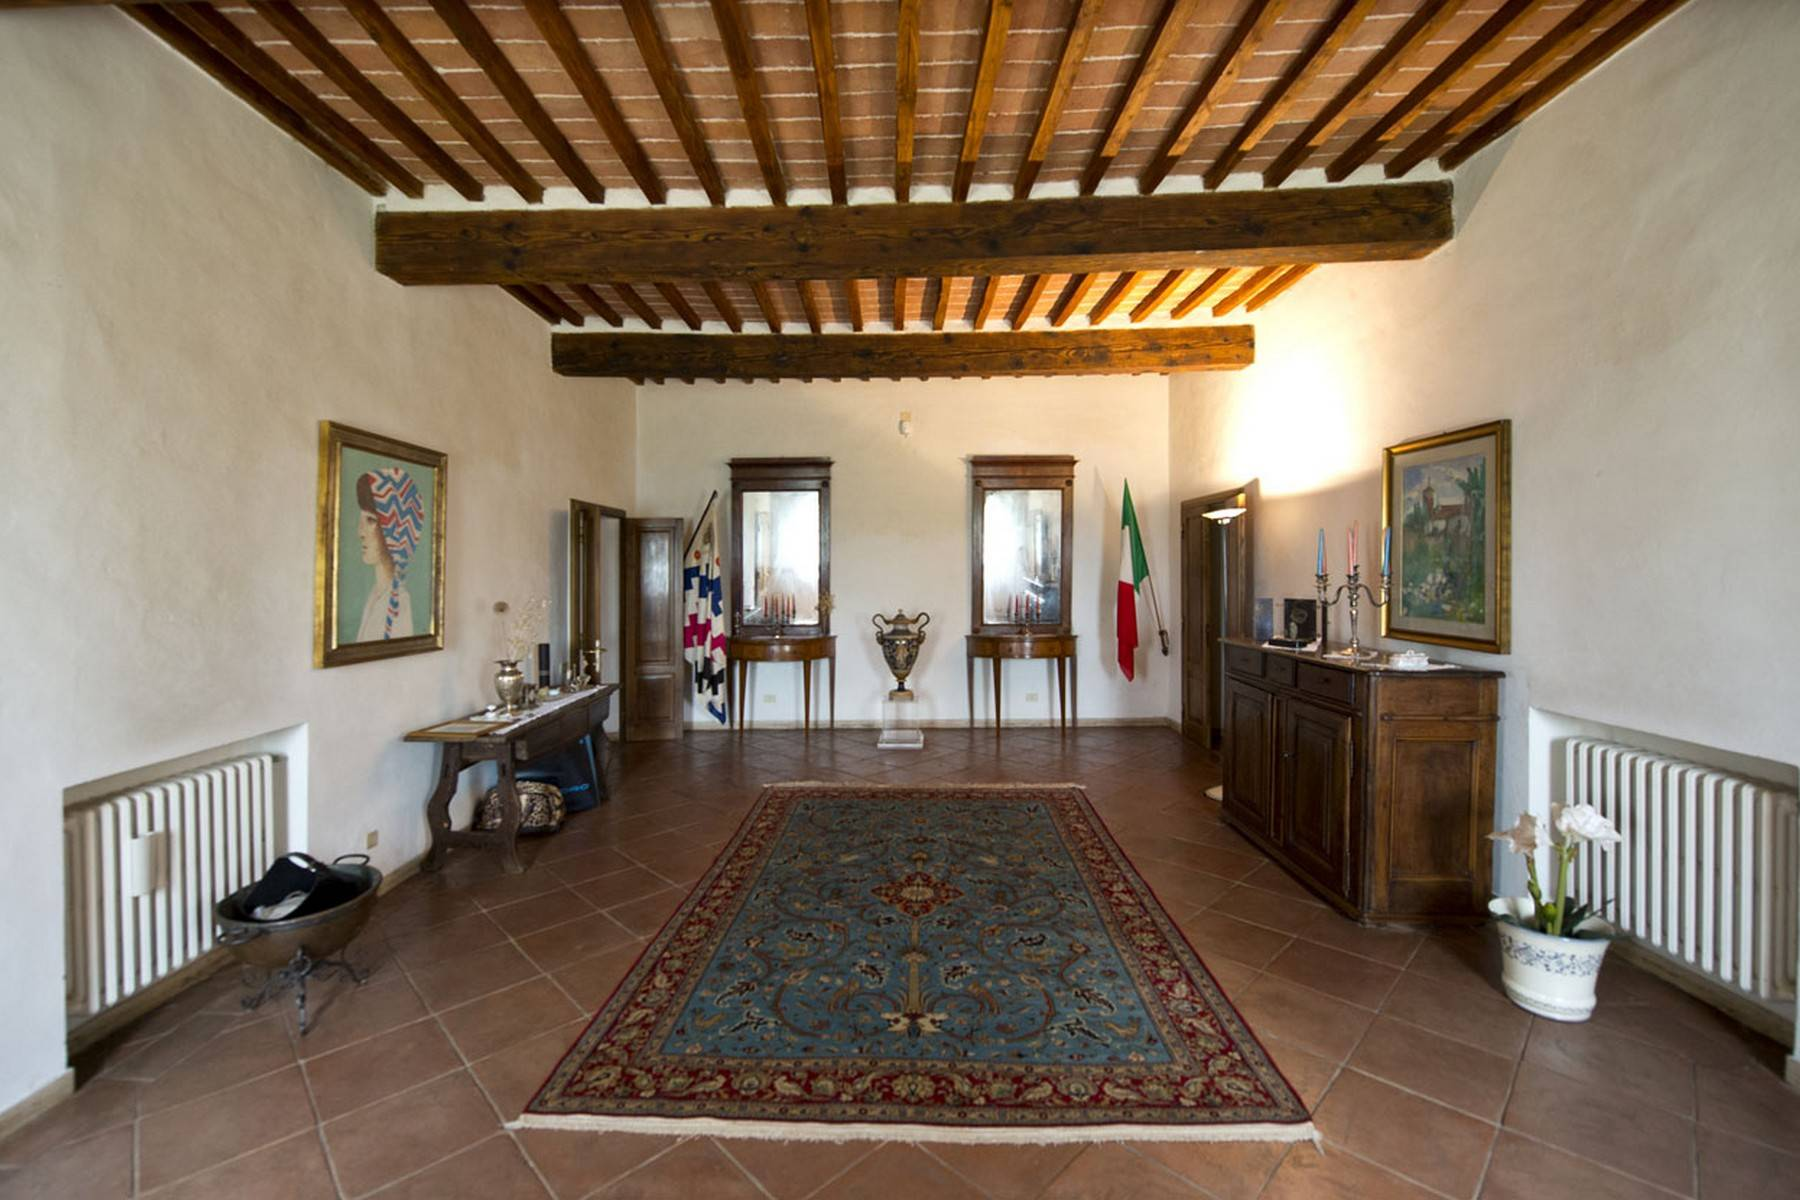 Aristocratic Villa for Sale on the Hills of Siena - 7